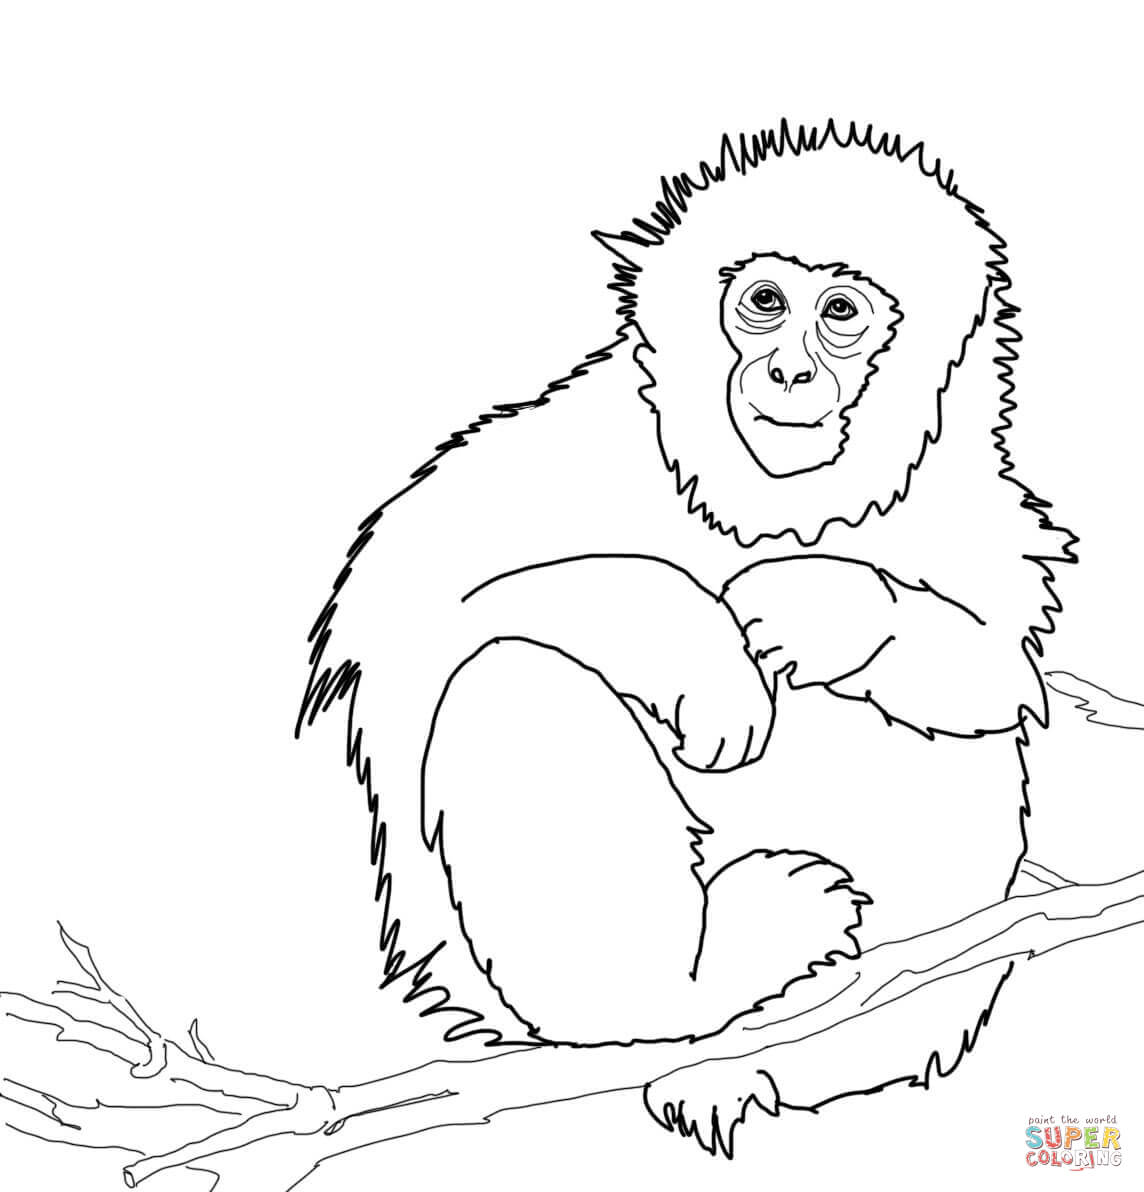 Japanese Macaque clipart #8, Download drawings